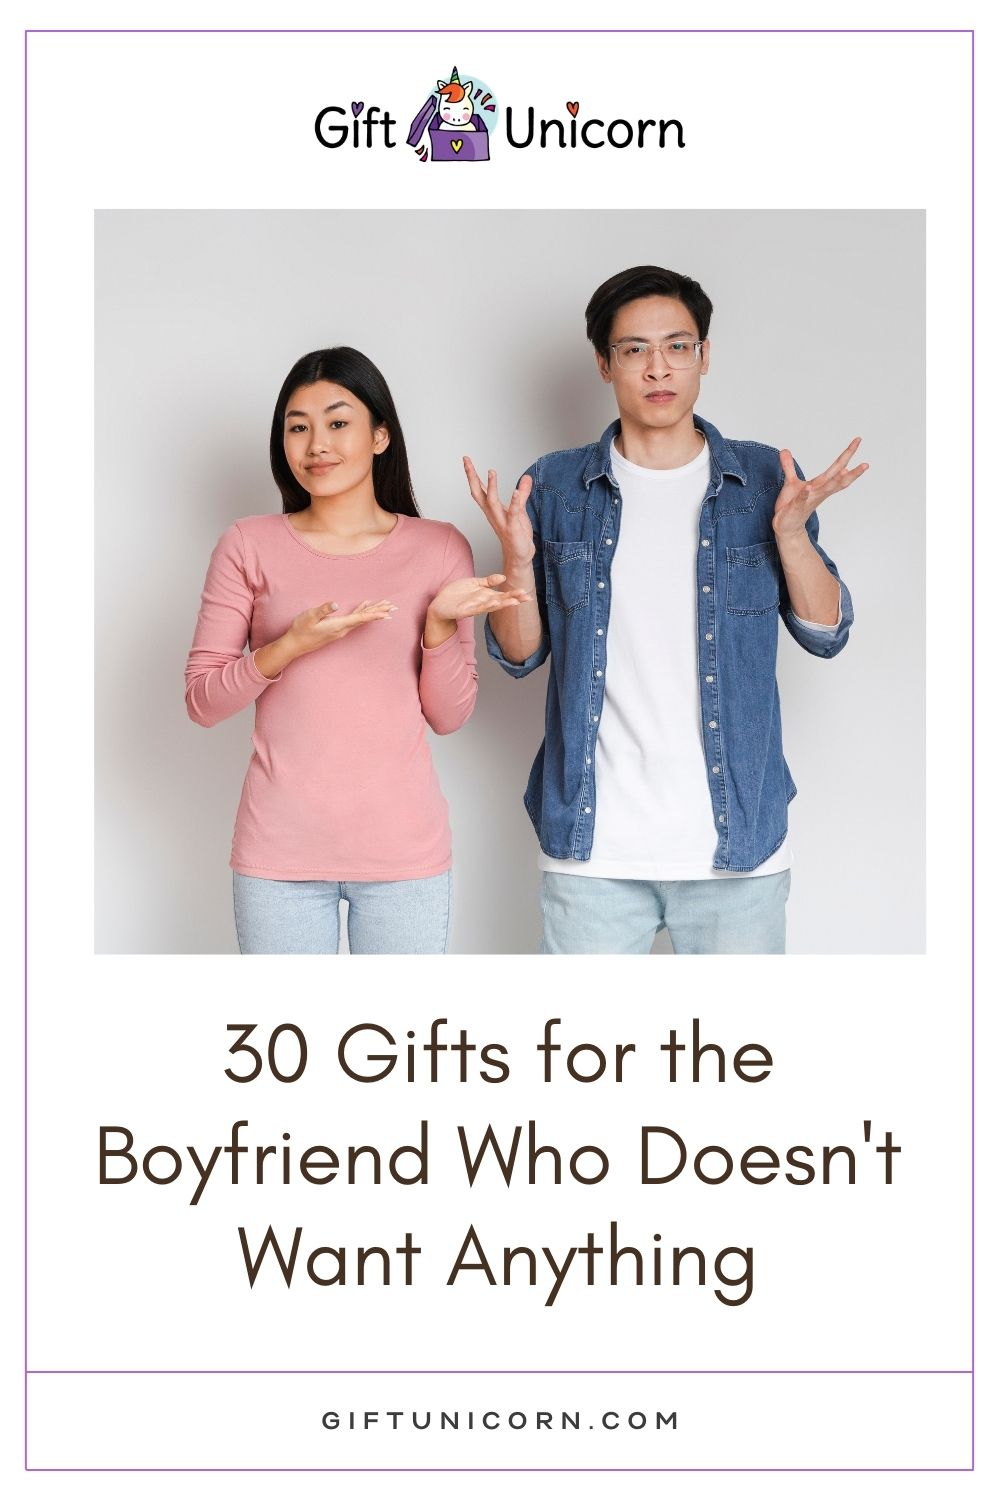 gifts for a boyfriend who does not want anything